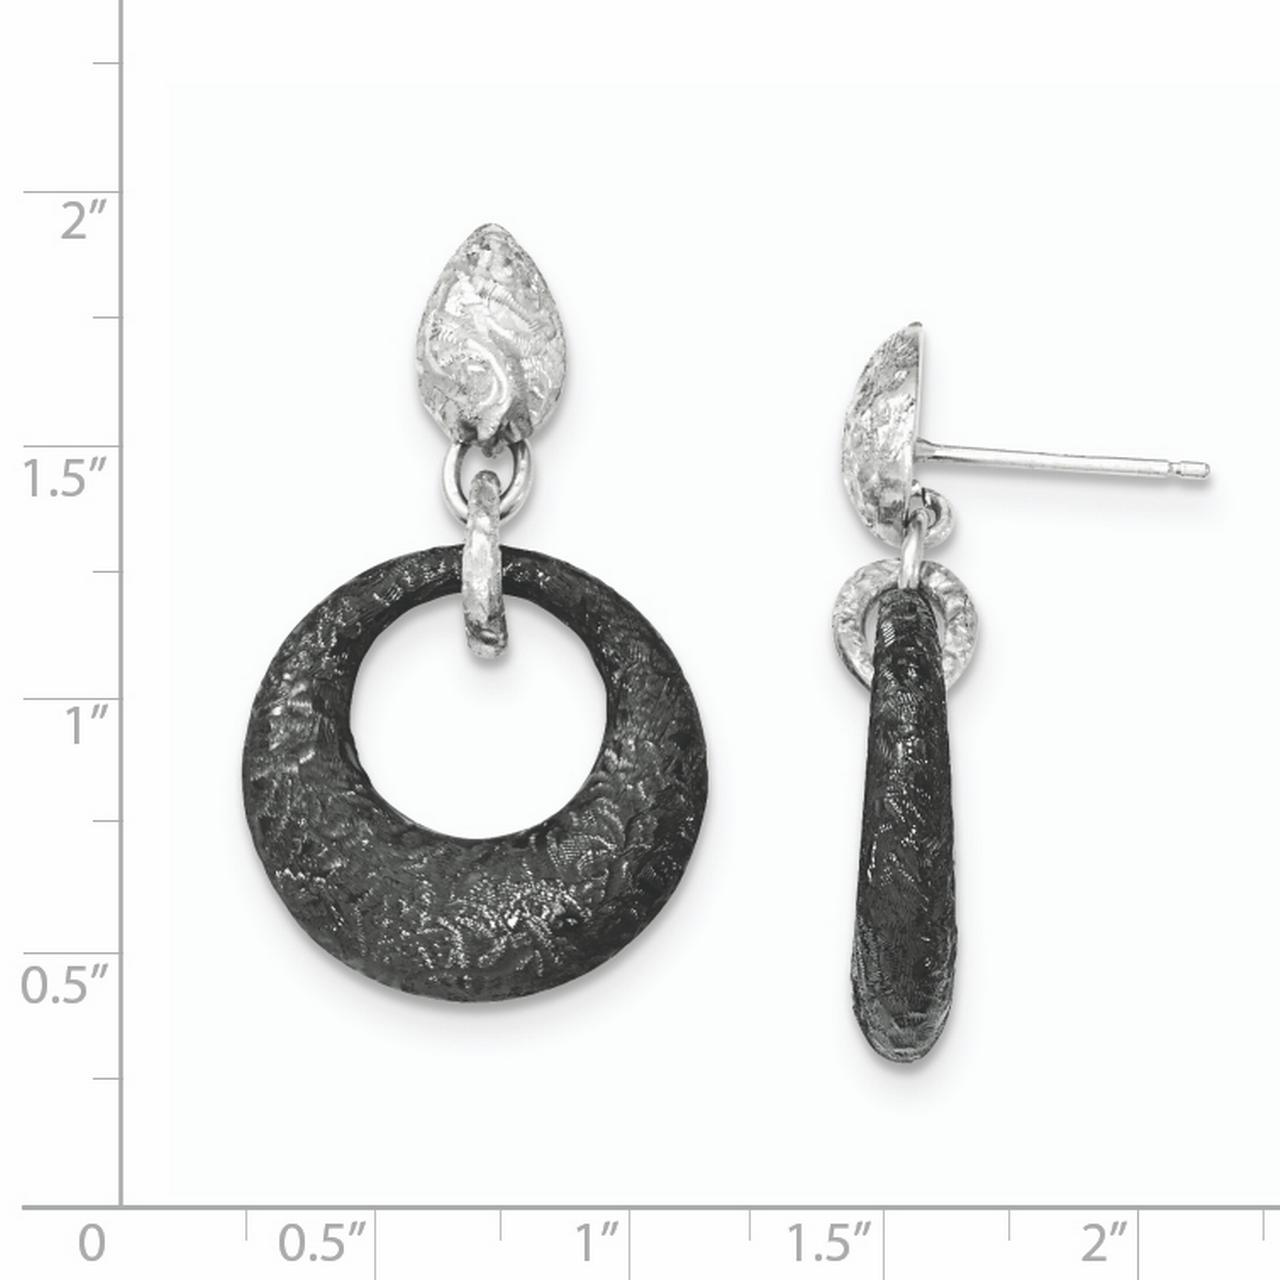 925 Sterling Silver Textured Black Post Stud Drop Dangle Chandelier Earrings Fine Jewelry Gifts For Women For Her - image 1 of 2